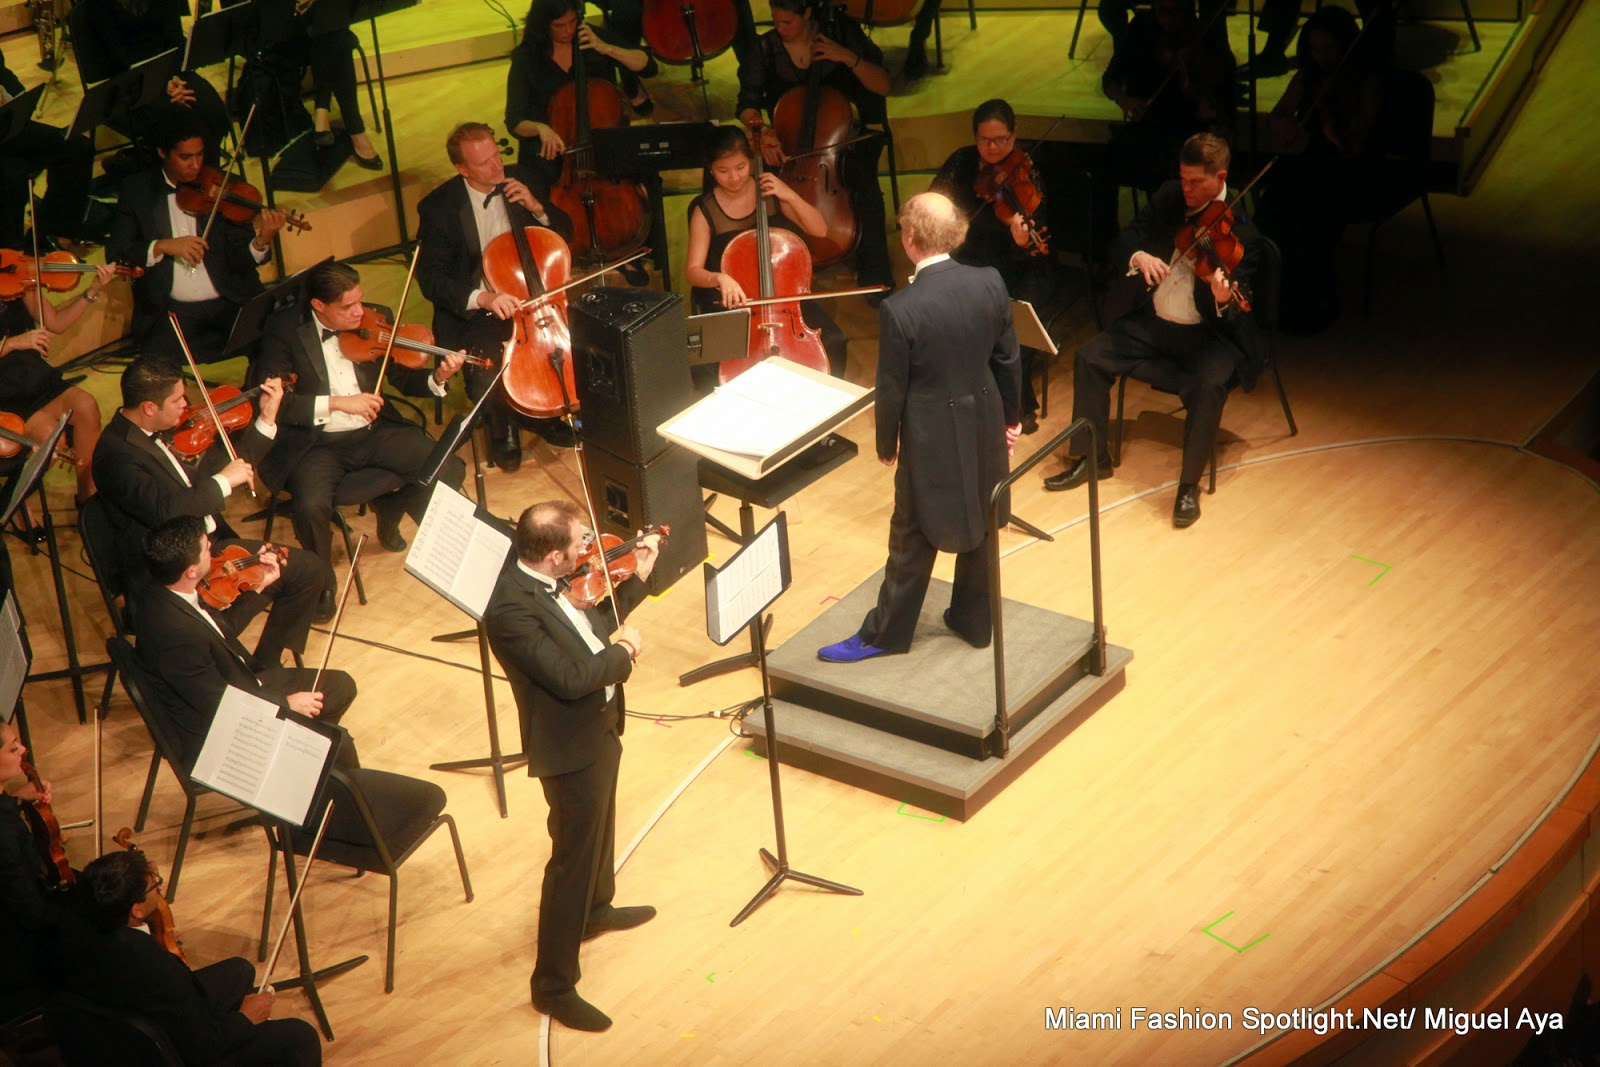 Miami Symphony Orchestra celebrated 50 years of the Beatles with a full house concert